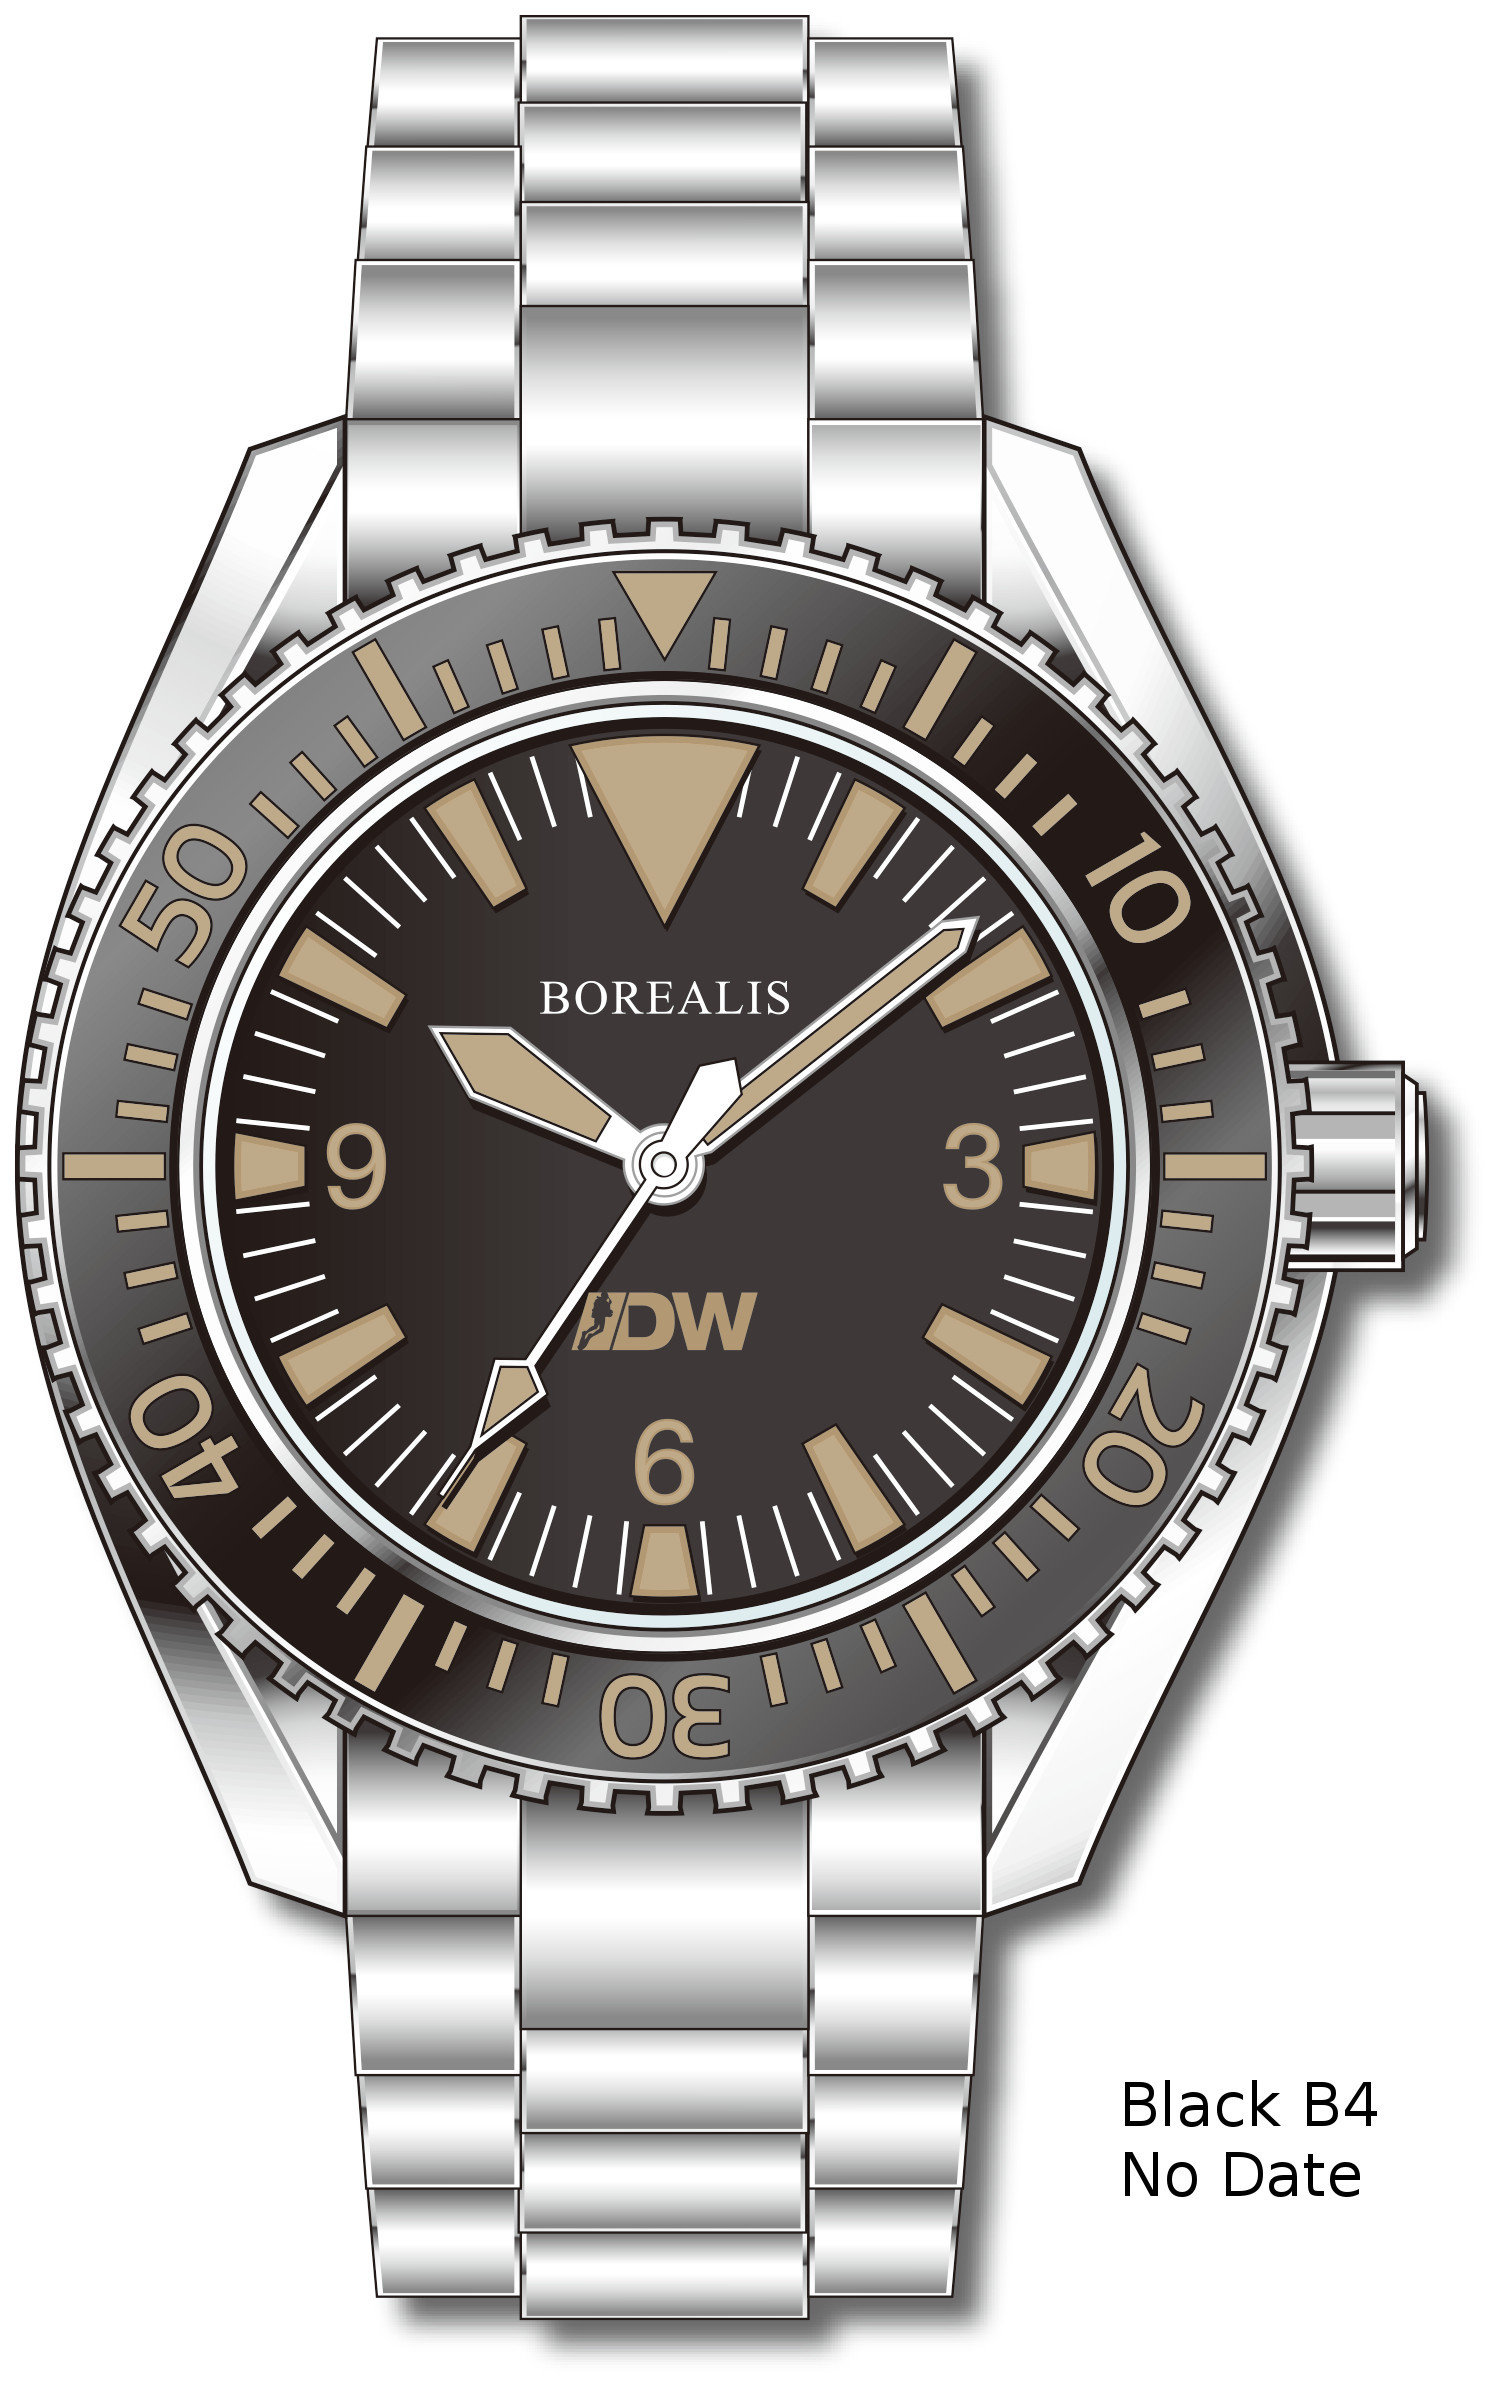 Pre-Order Borealis Estoril 300 for Diver's Watches Facebook Group Black Dial Big Triangle No Date Black B4 No Date EDWFBGBBLACKB4NDT